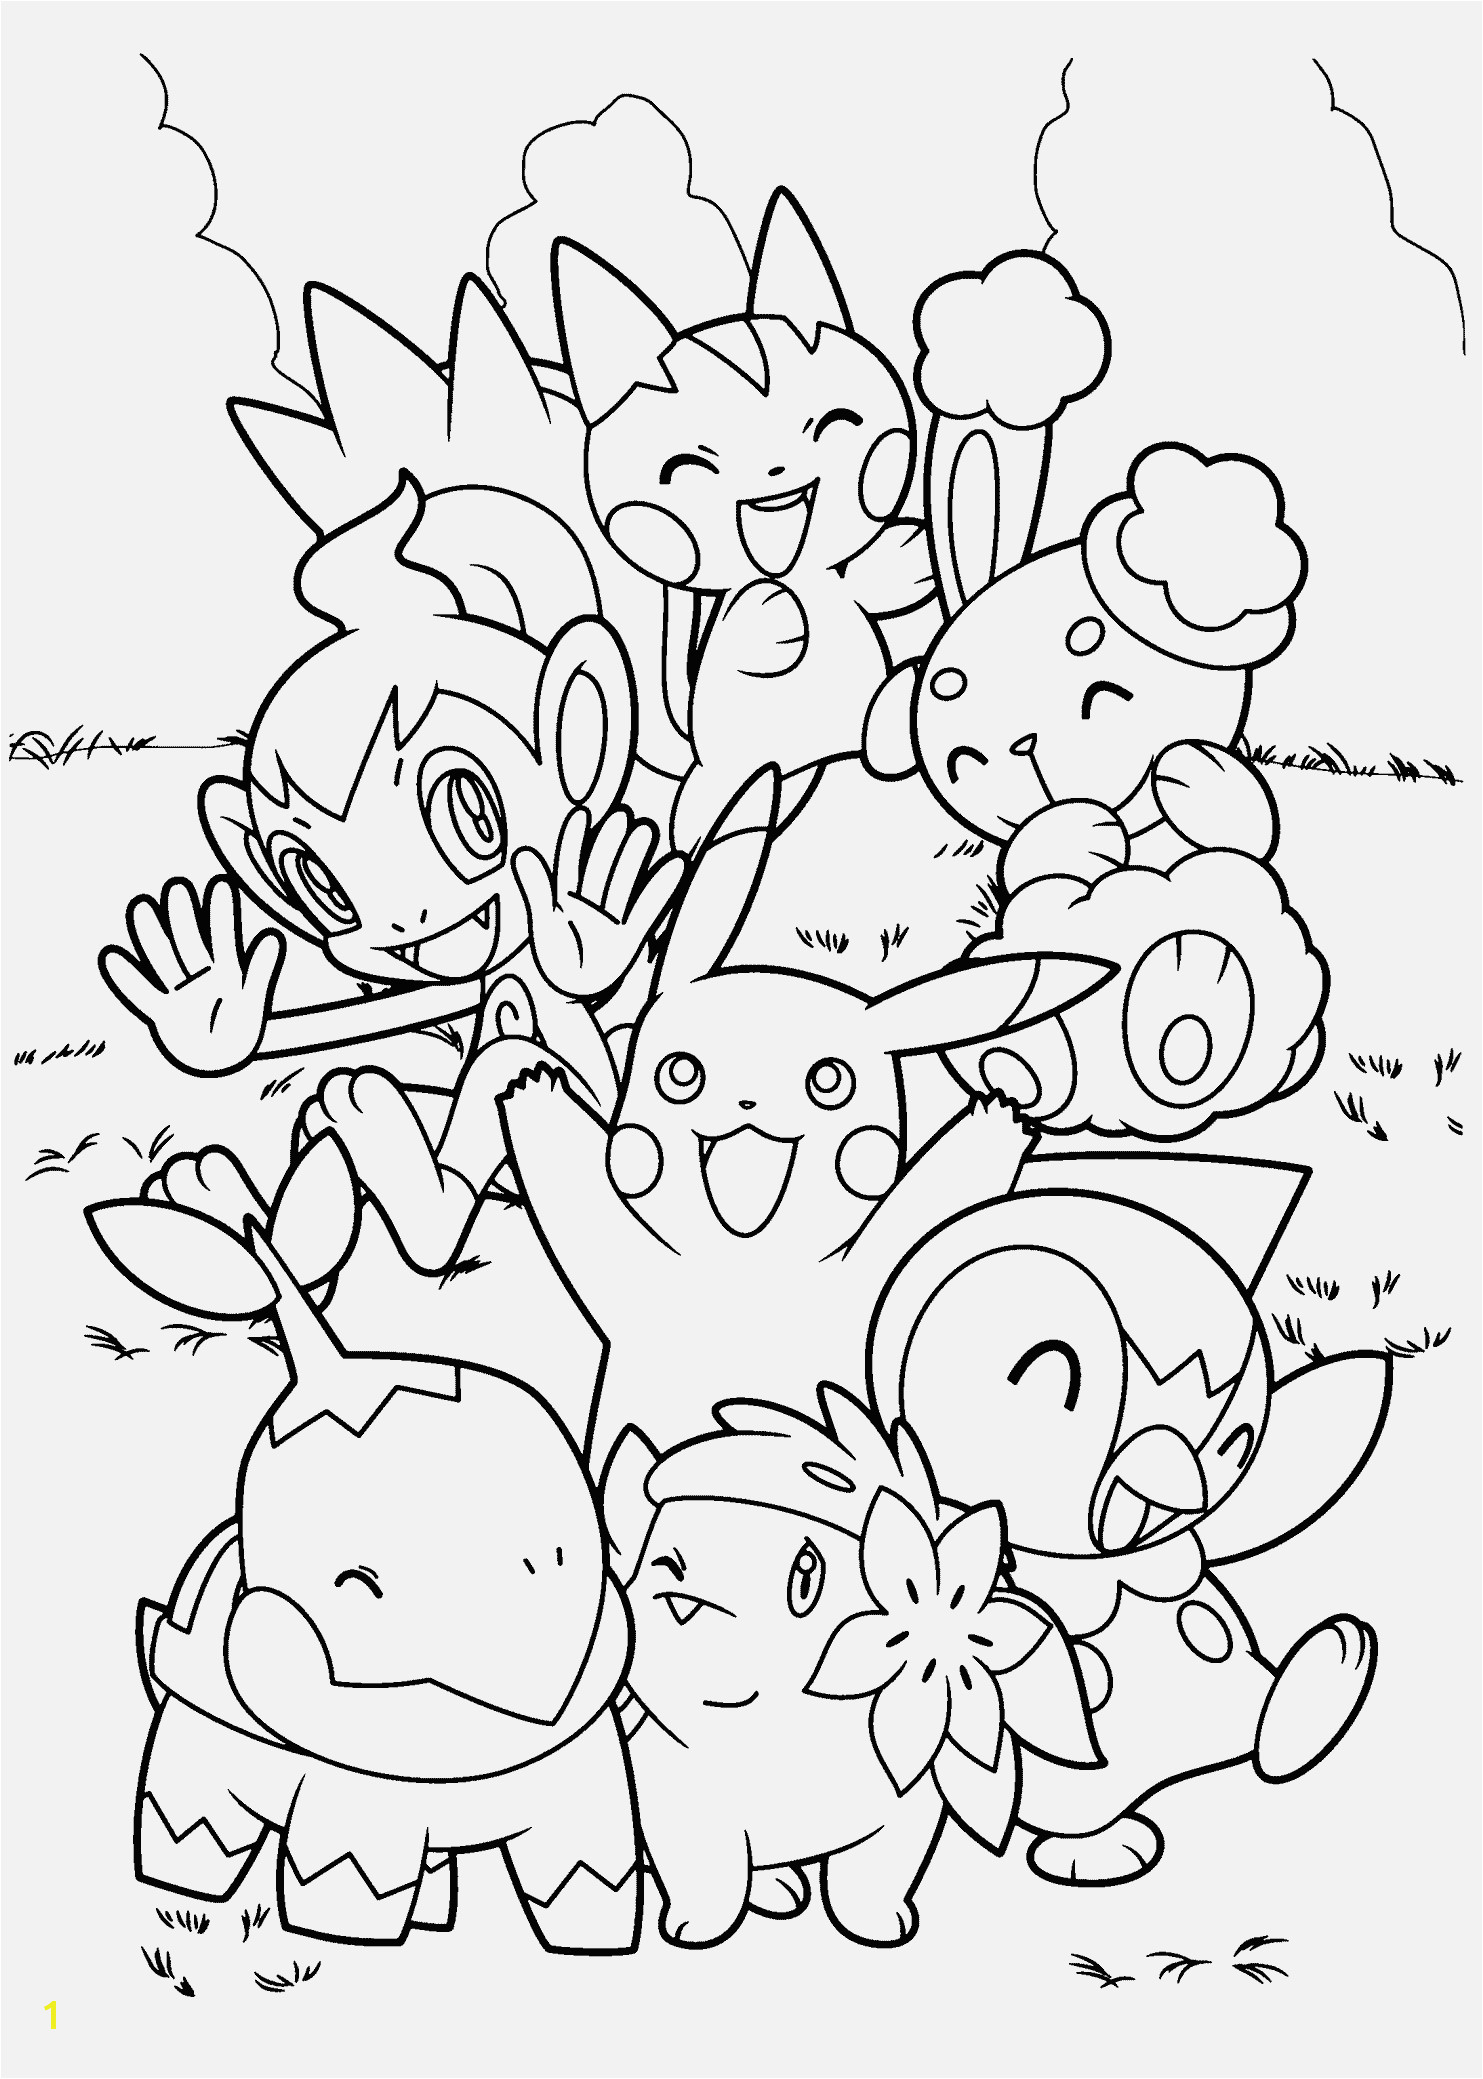 printable coloring pokemon cards unique pokemon cards mega ex coloring pages pictures pokemon printable cards coloring